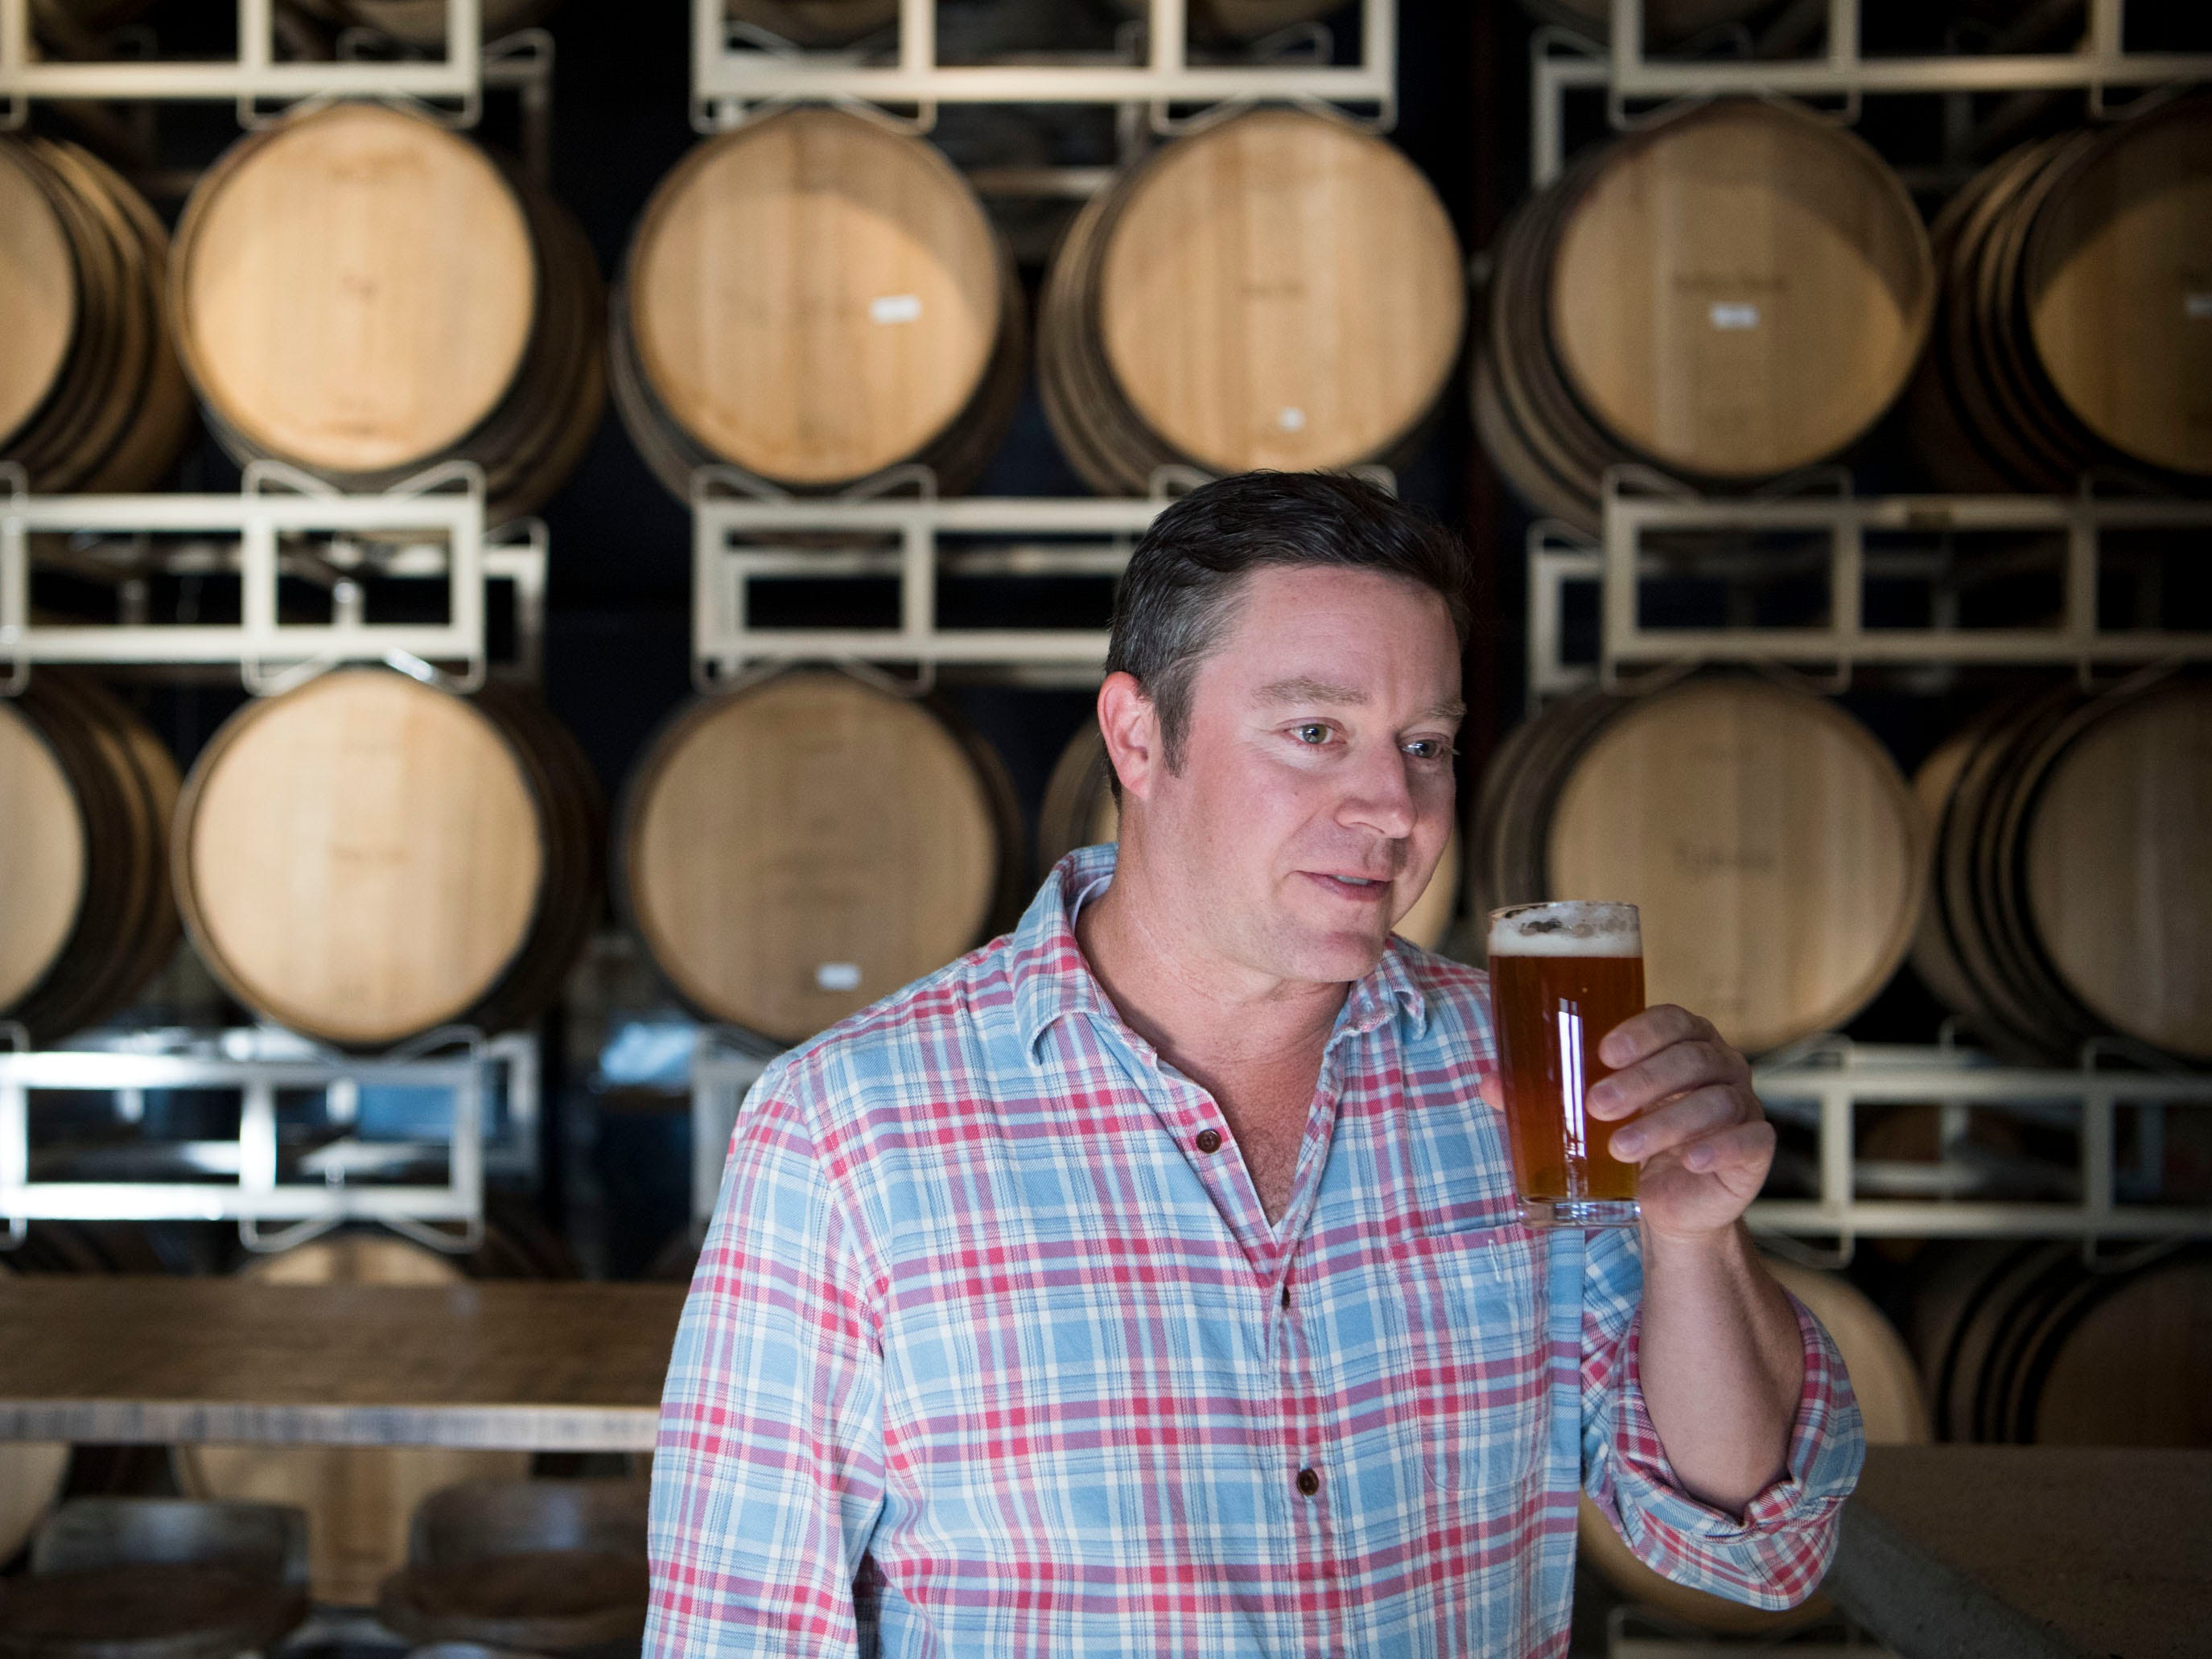 Roy Milner, chief fermentation officer at Blackberry Farm brewery taproom on Wednesday, January 9, 2019.